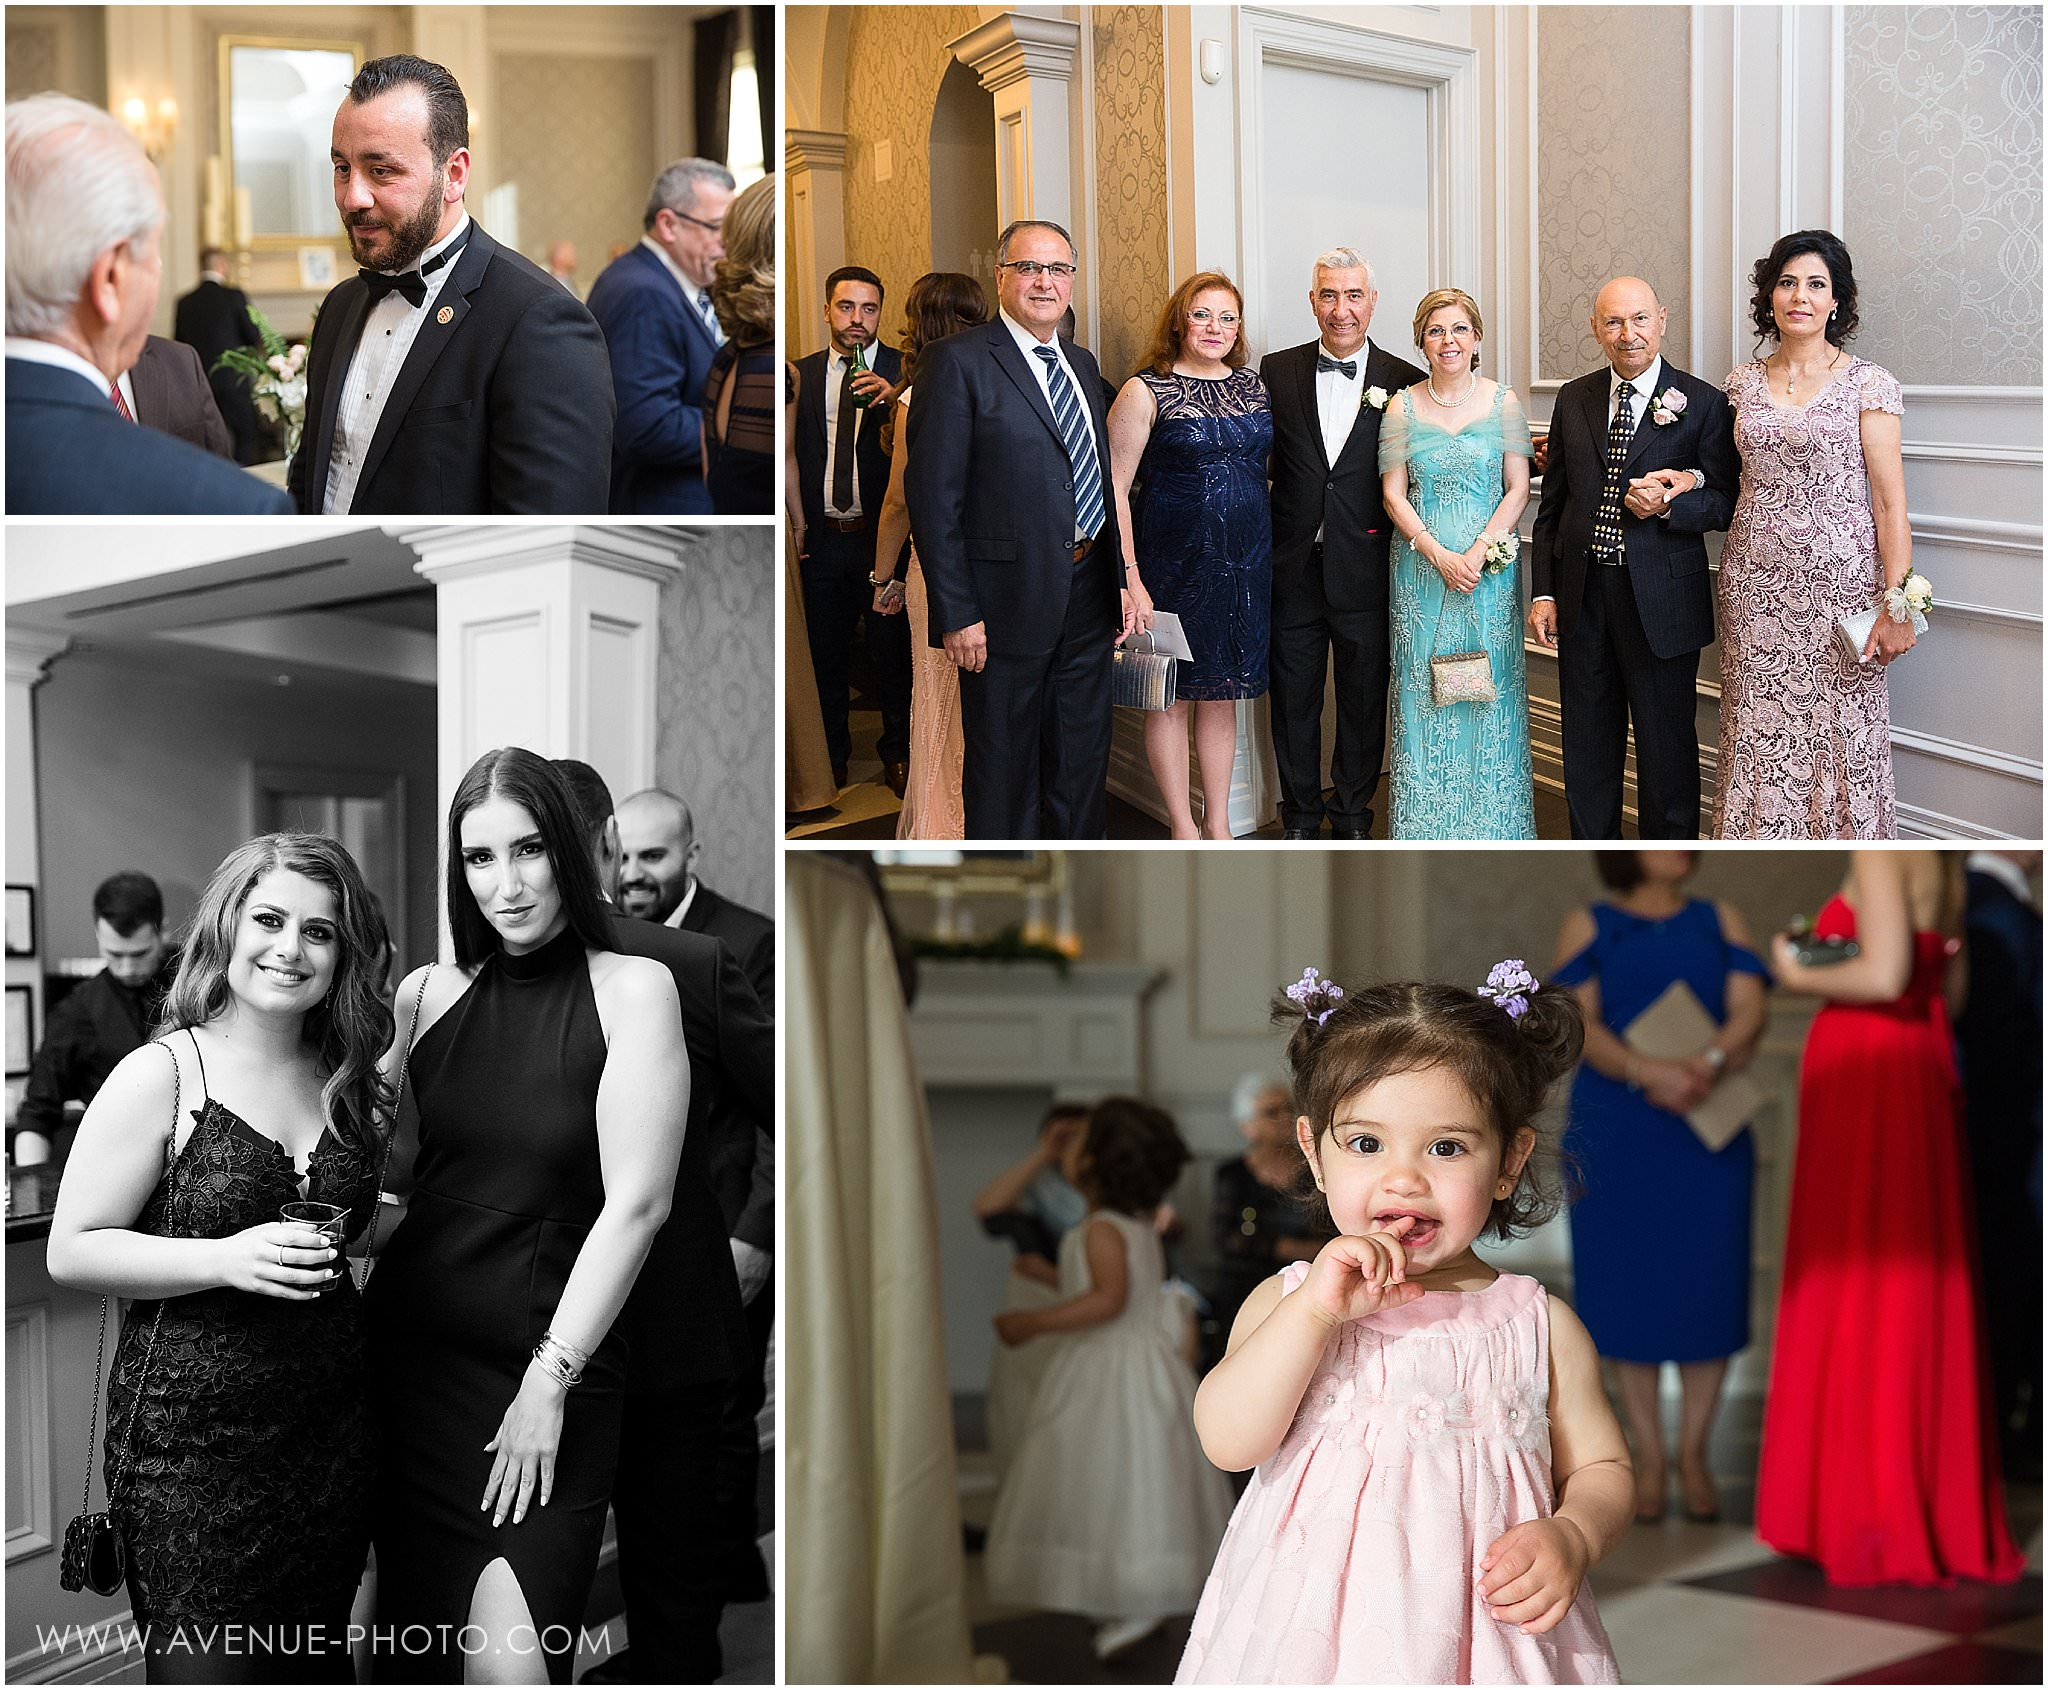 Edwards Gardens Wedding photos, Hazelton Manor Wedding photos, Avenue photo